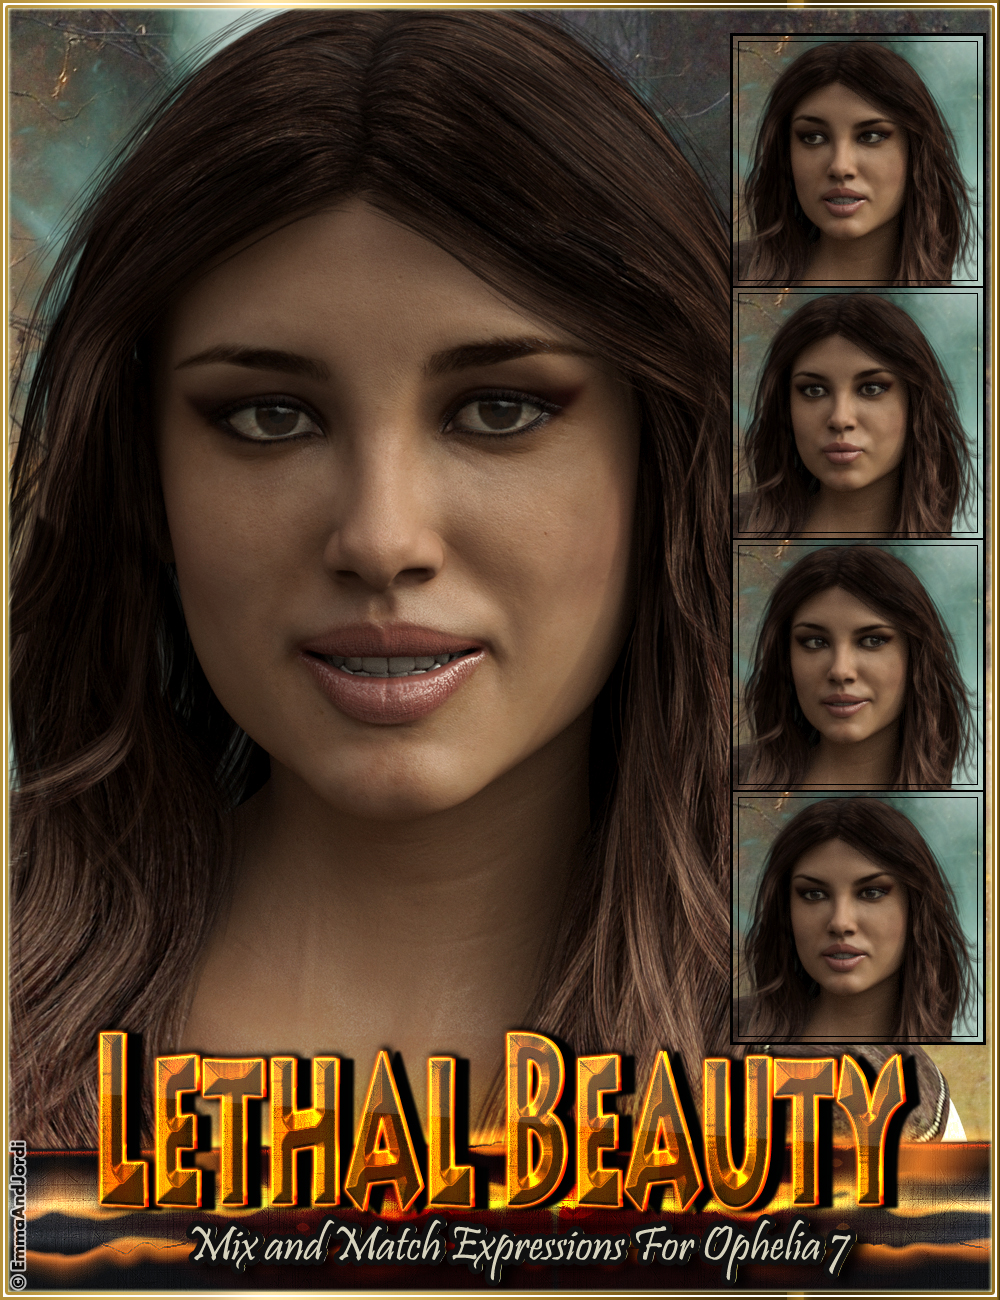 Lethal Beauty Mix and Match Expressions for Ophelia 7 and Genesis 3 Female(s) by: EmmaAndJordi, 3D Models by Daz 3D